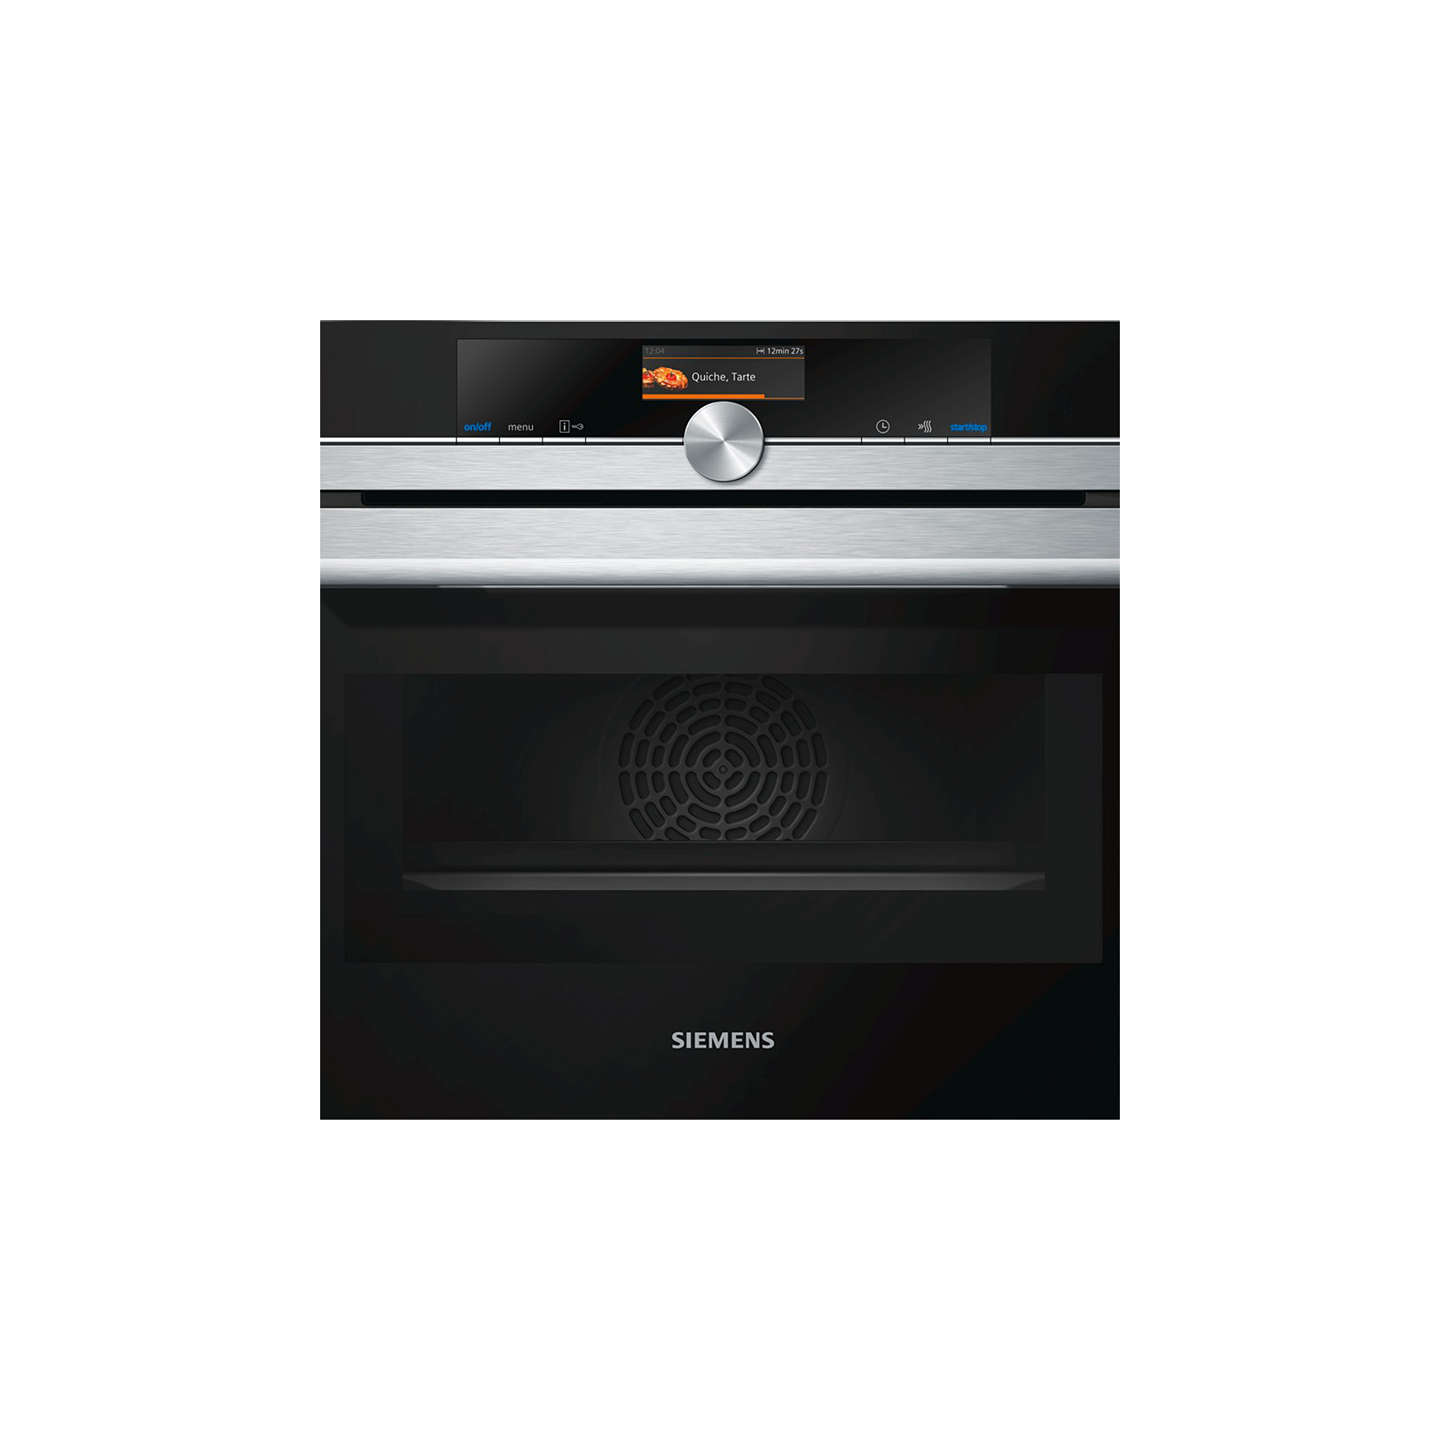 Siemens CM656GBS1B Built-in Combination Microwave Oven, Stainless ...